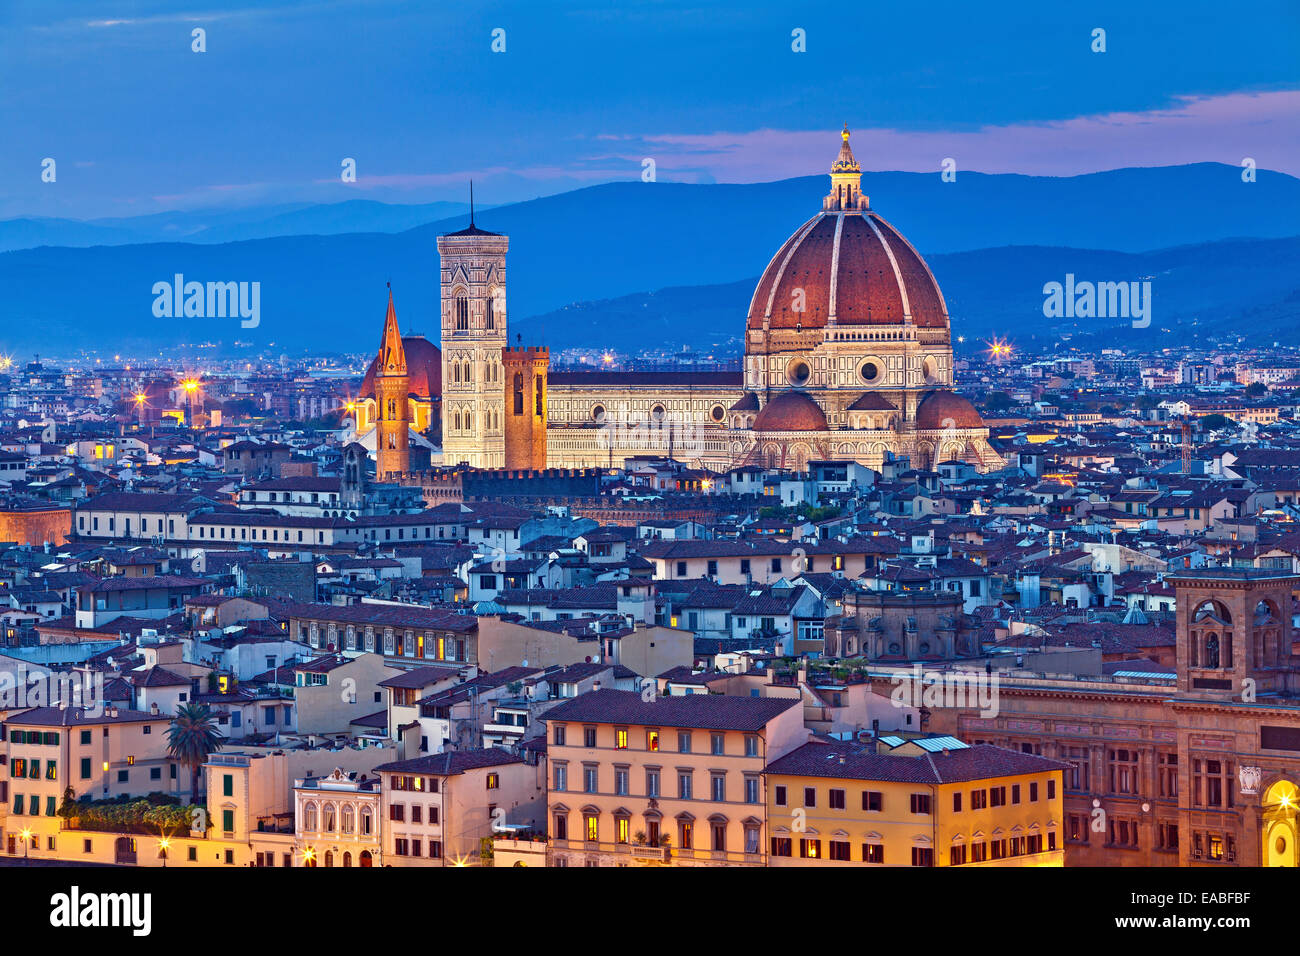 Florence. Image of Florence, Italy during twilight blue hour. - Stock Image